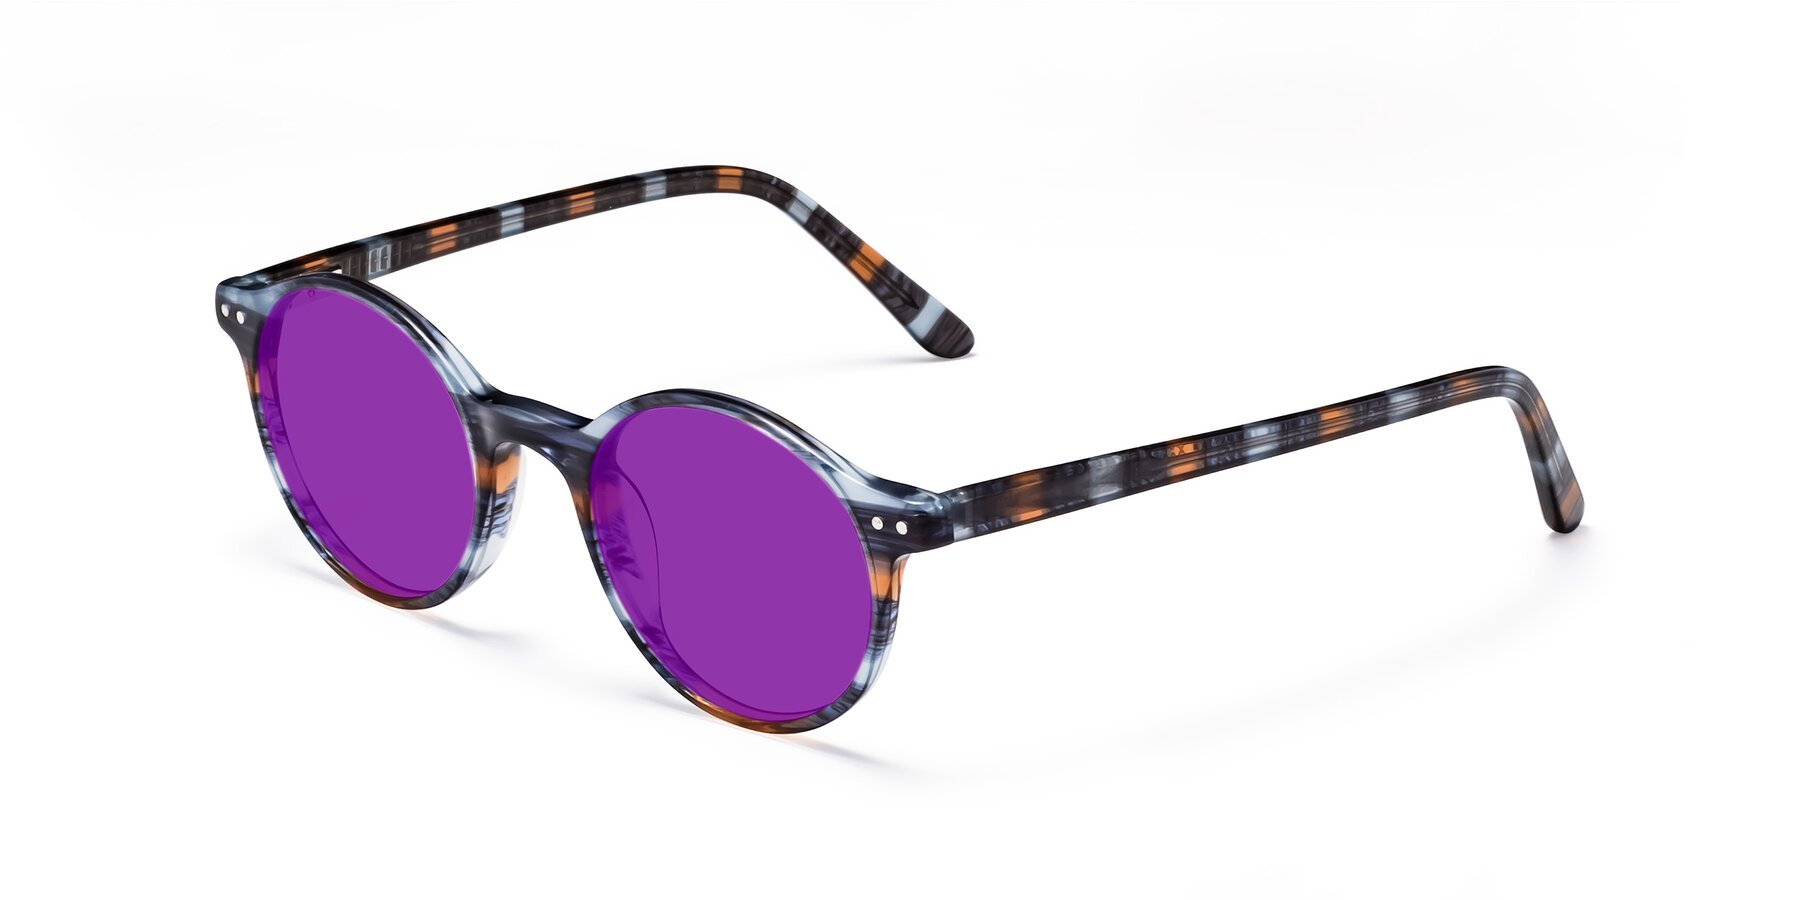 Angle of 17519 in Stripe Blue Brown with Purple Tinted Lenses